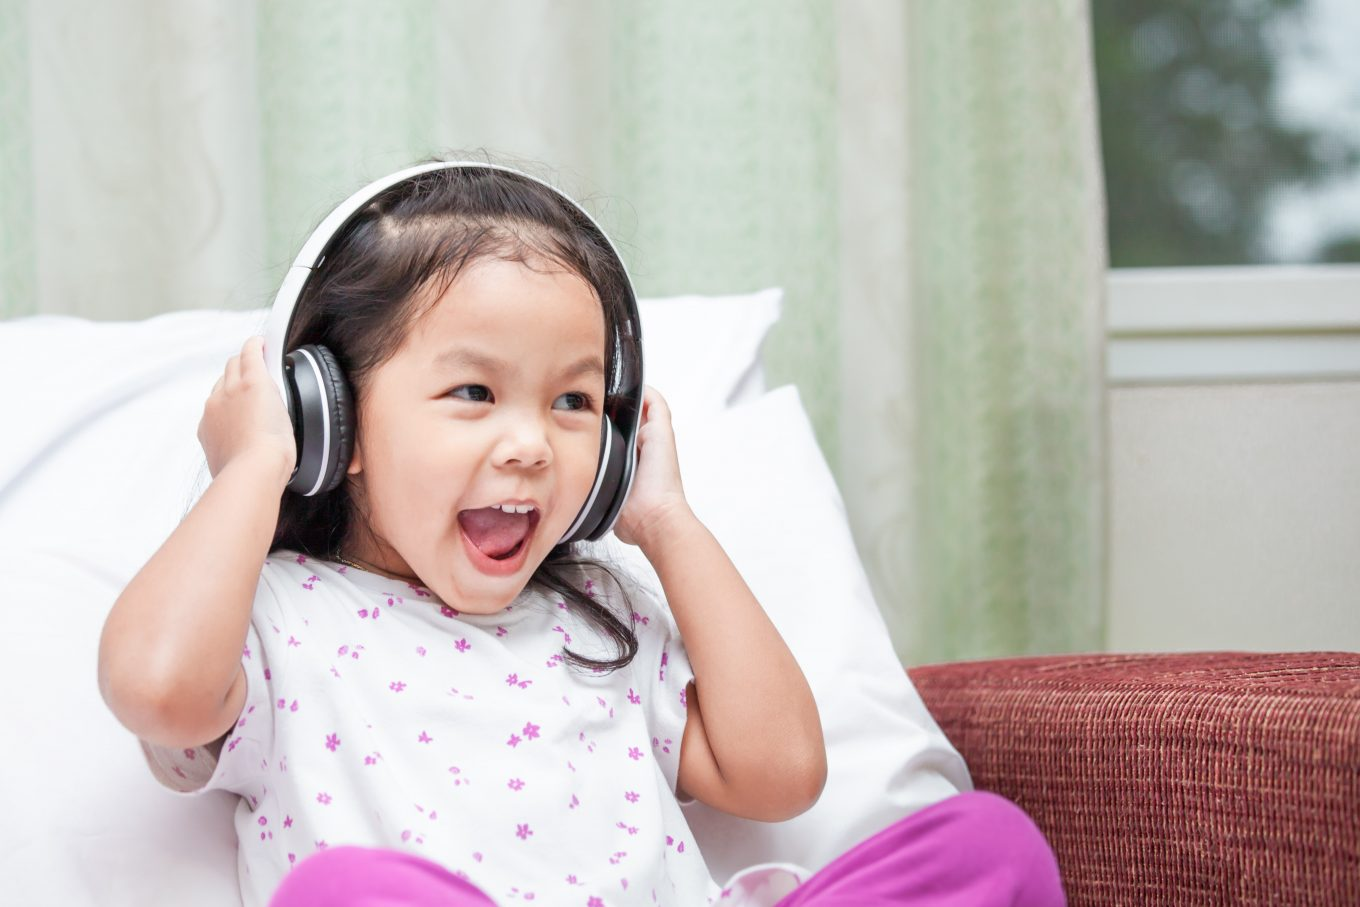 Classical music for kids is very inspiring.